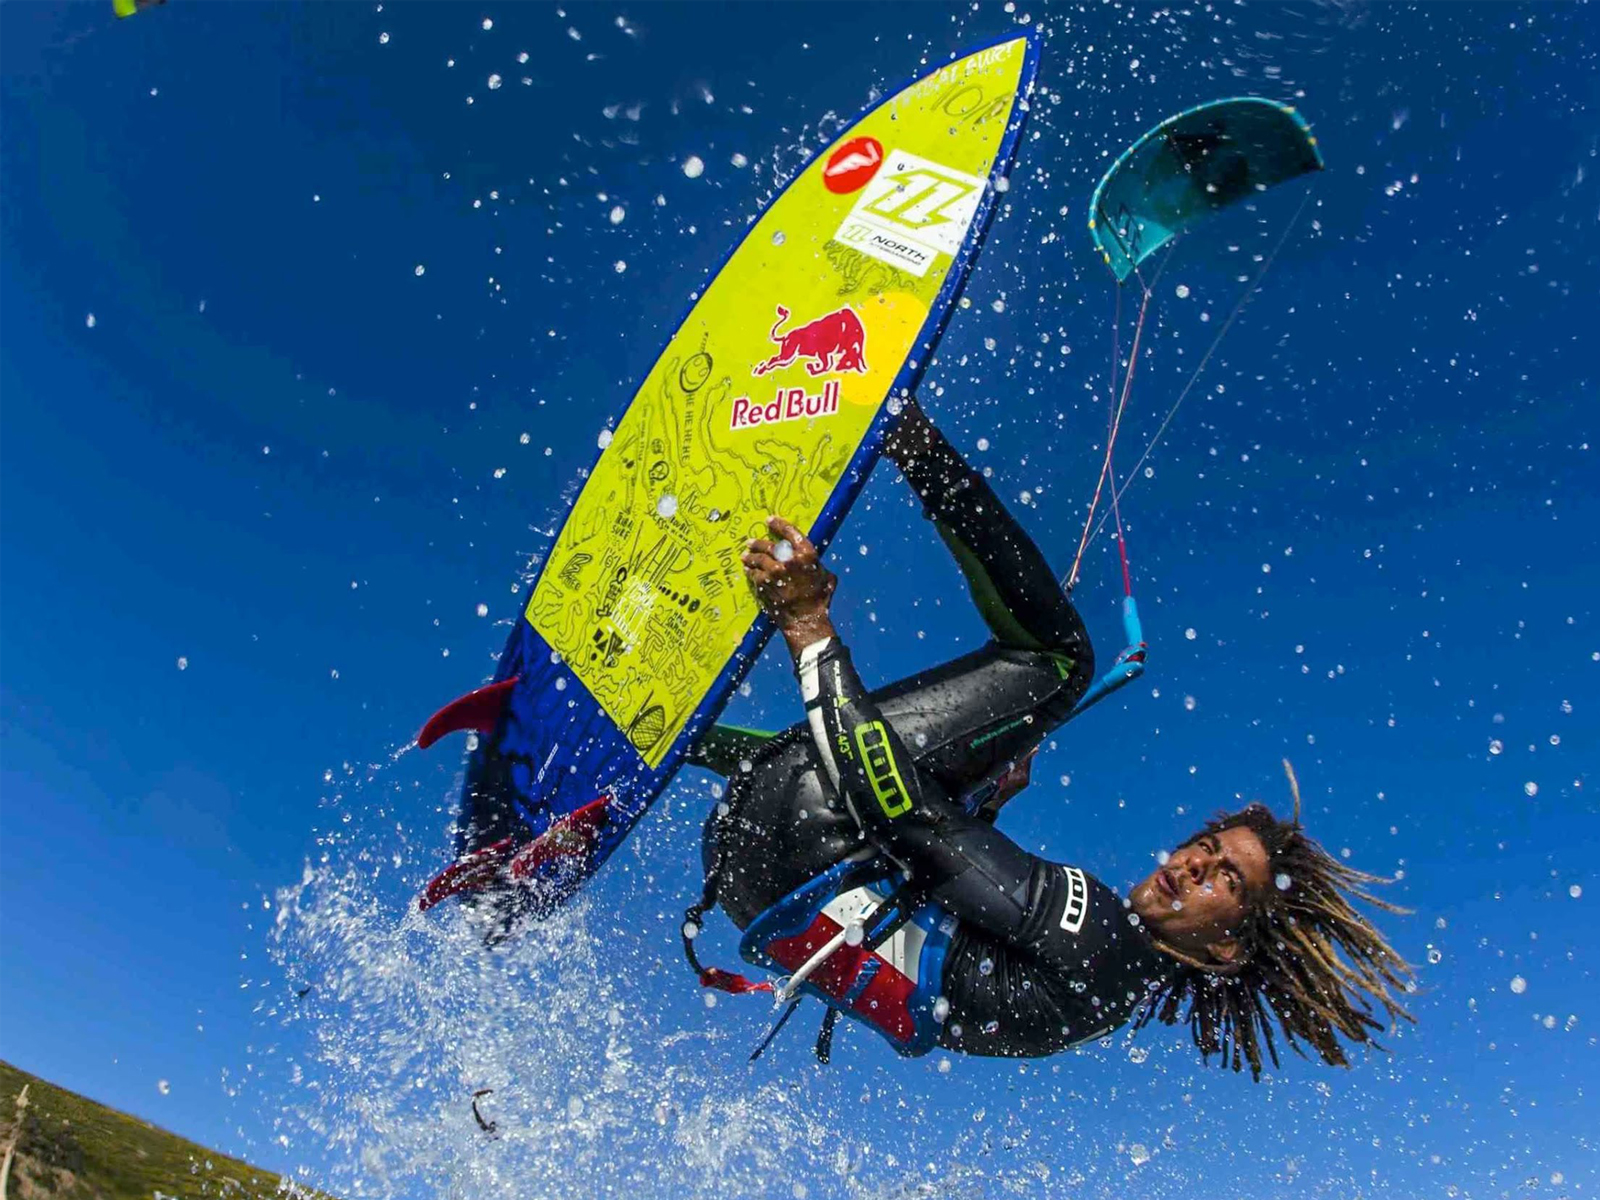 kitesurf wallpaper image - Airton Cozzolino with a strapless arial - North kiteboarding - in resolution: Standard 4:3 1600 X 1200